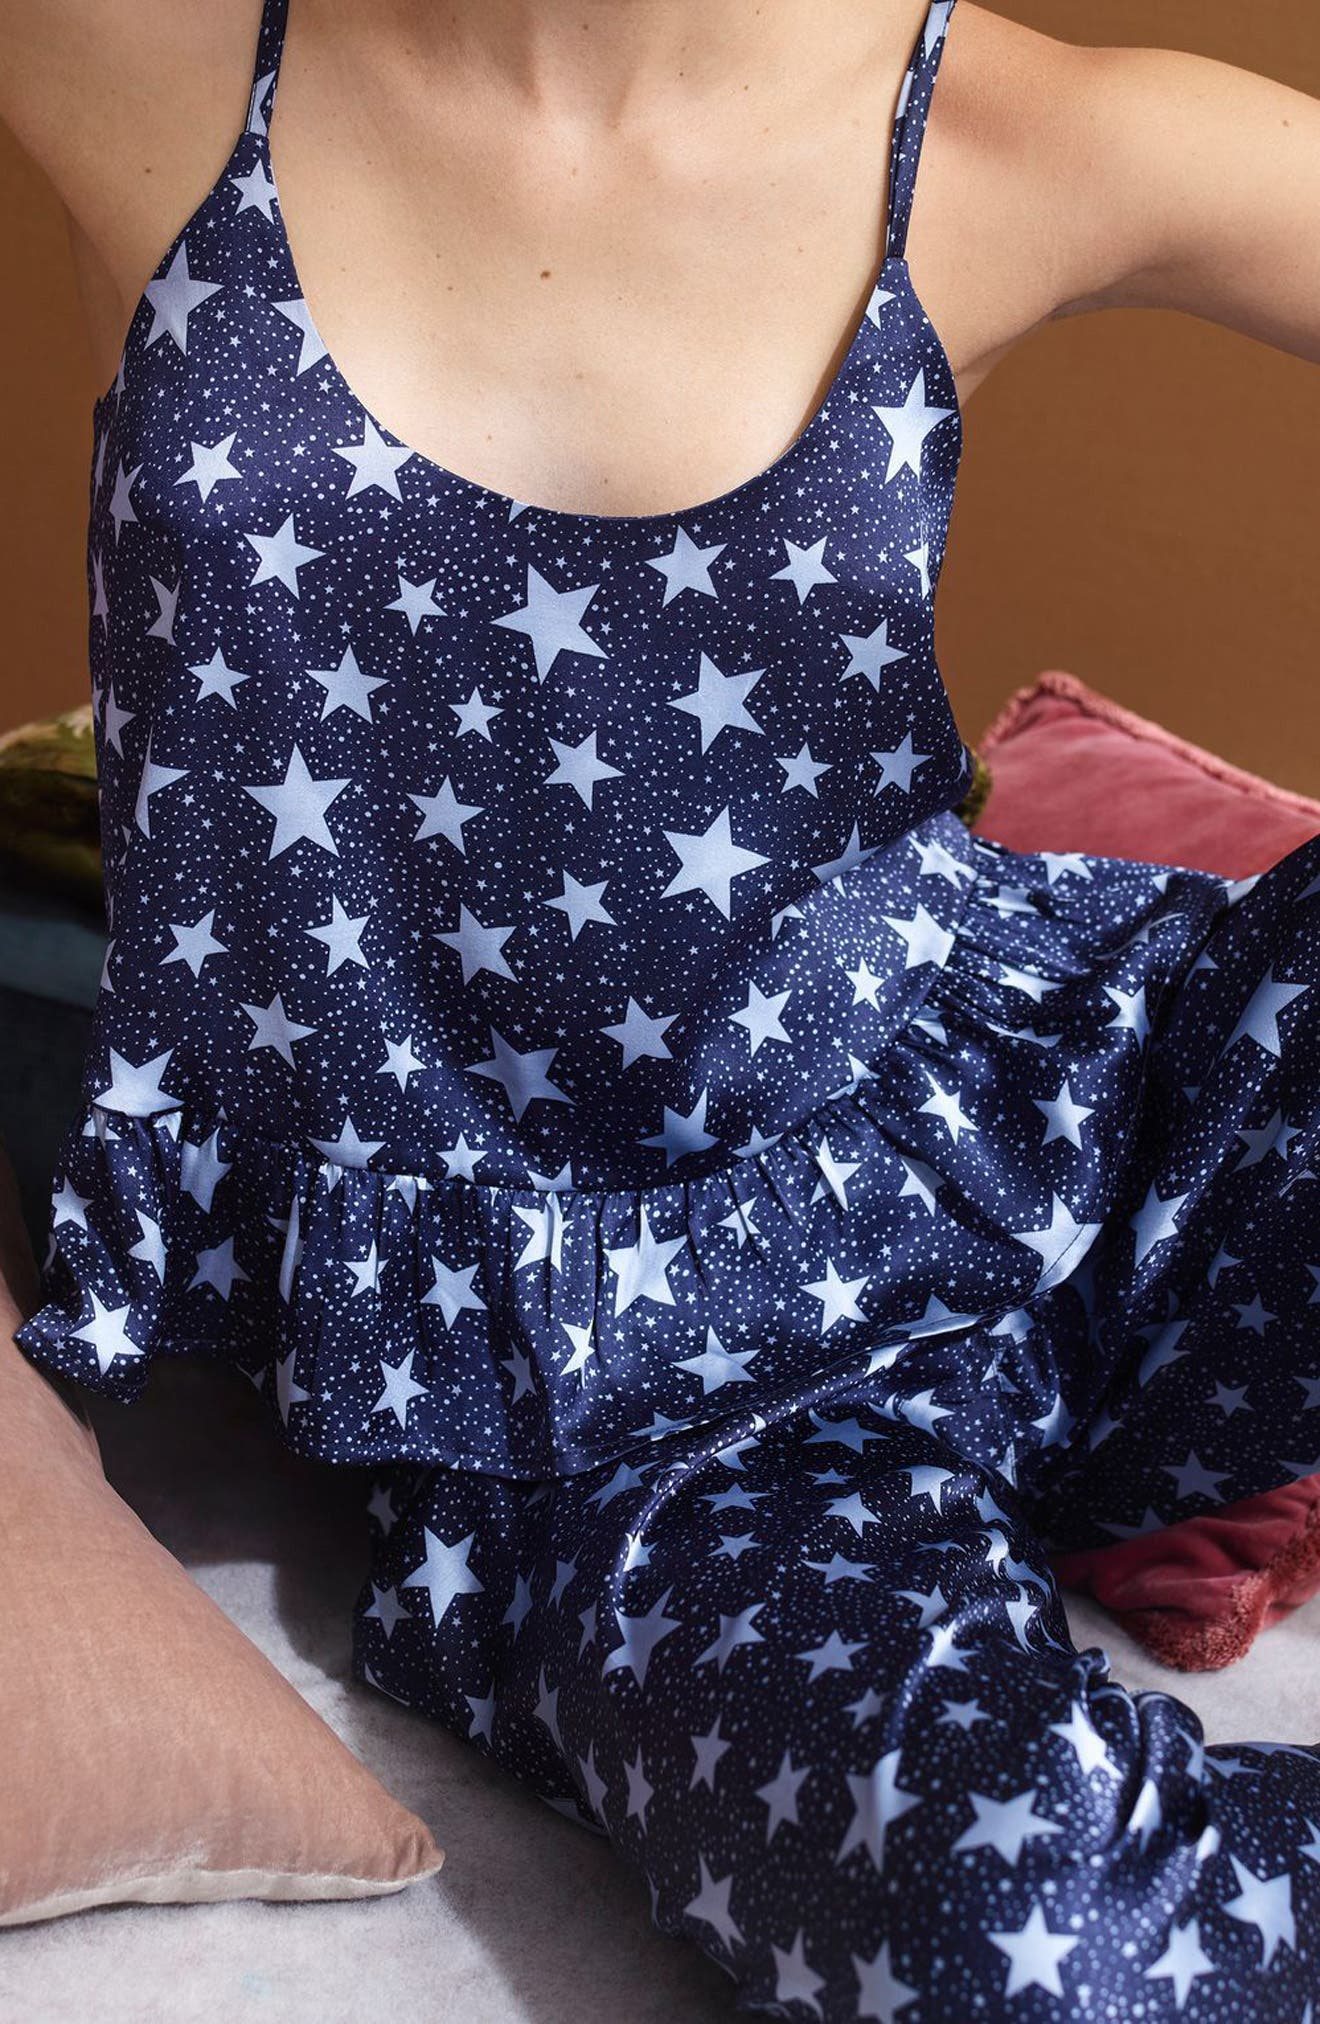 Star Satin Pajamas,                             Alternate thumbnail 3, color,                             Navy Blue Multi